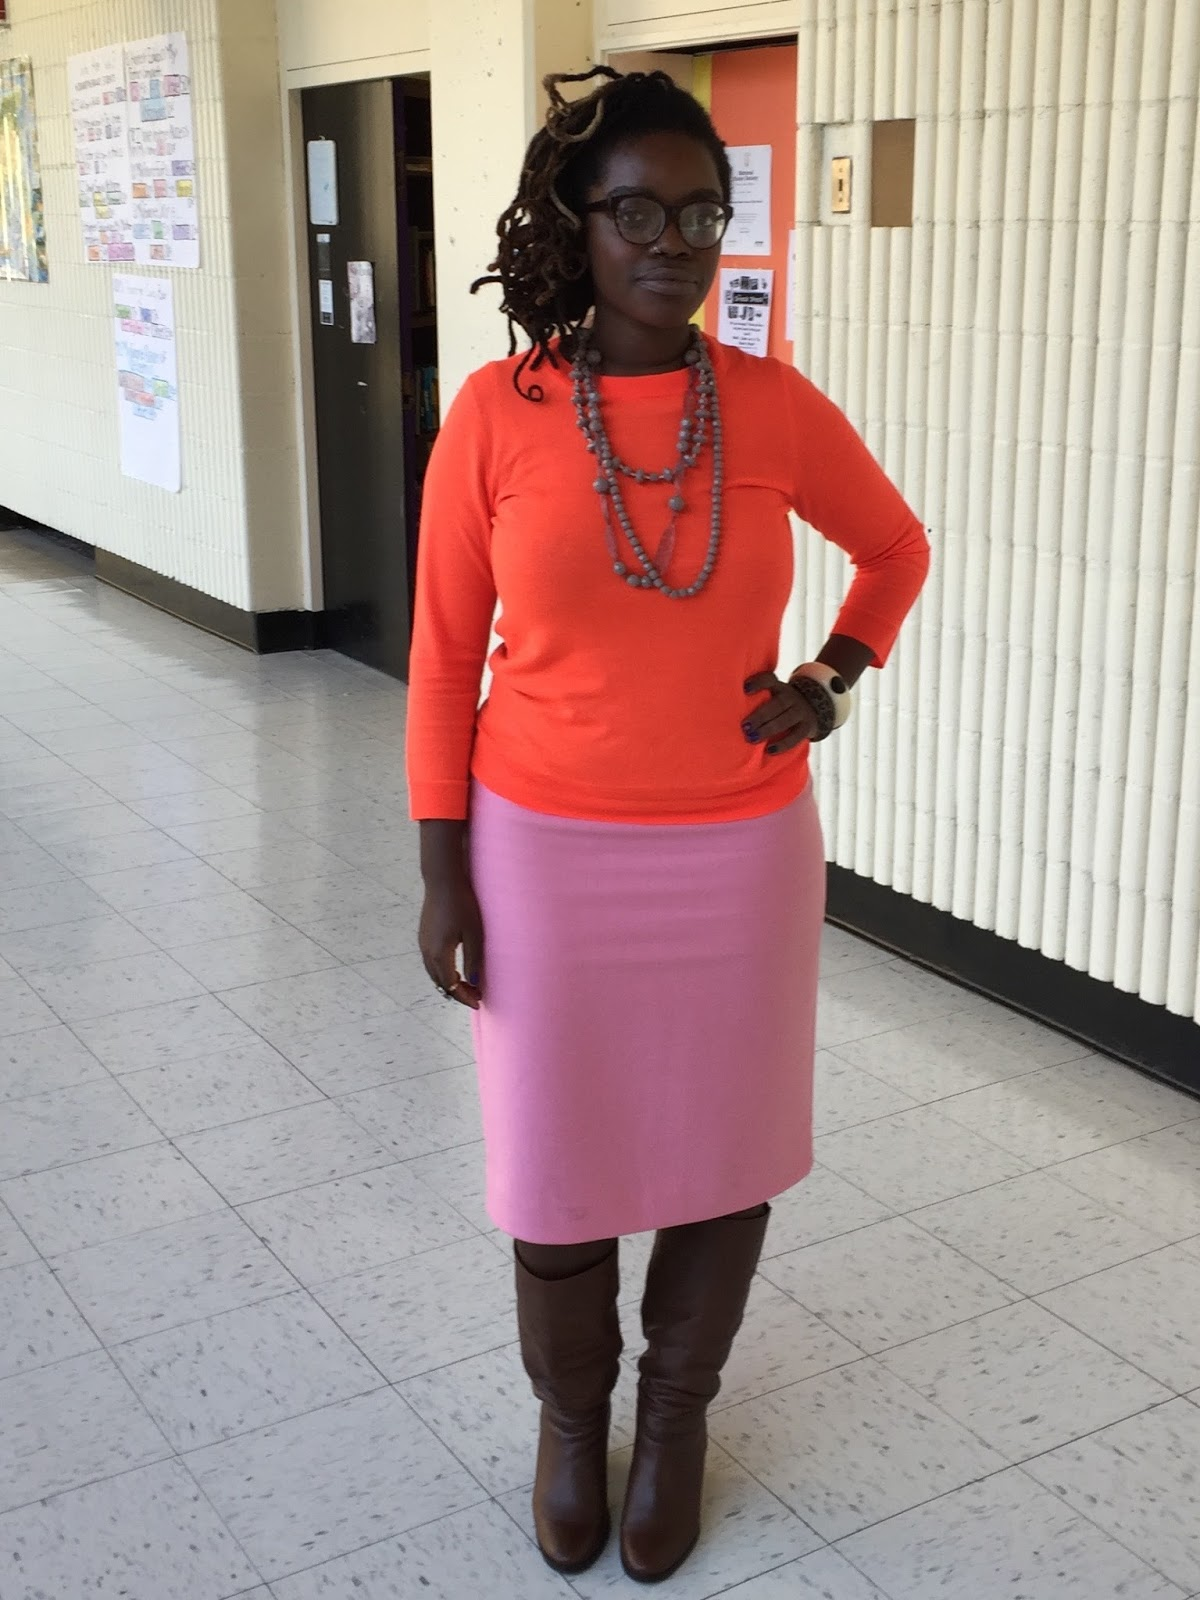 I Enjoyed The Contrast Against Warm Pink Tone Of Skirt Also Love How Deeply Evenly Brown Look While Wearing Such A Vibrant Orange Color